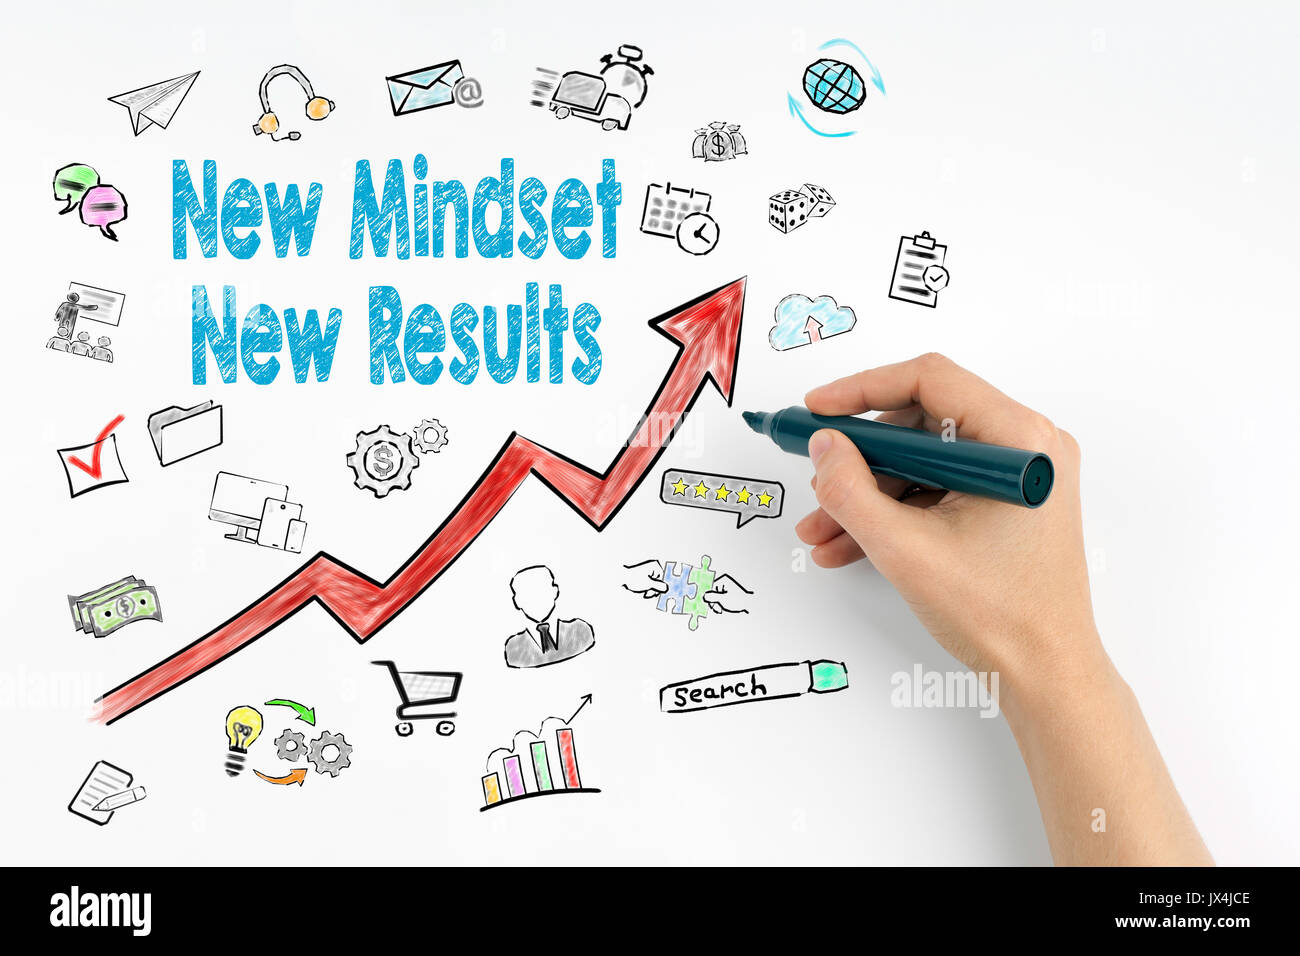 New Mindset New Results Concept. Hand with marker writing. - Stock Image